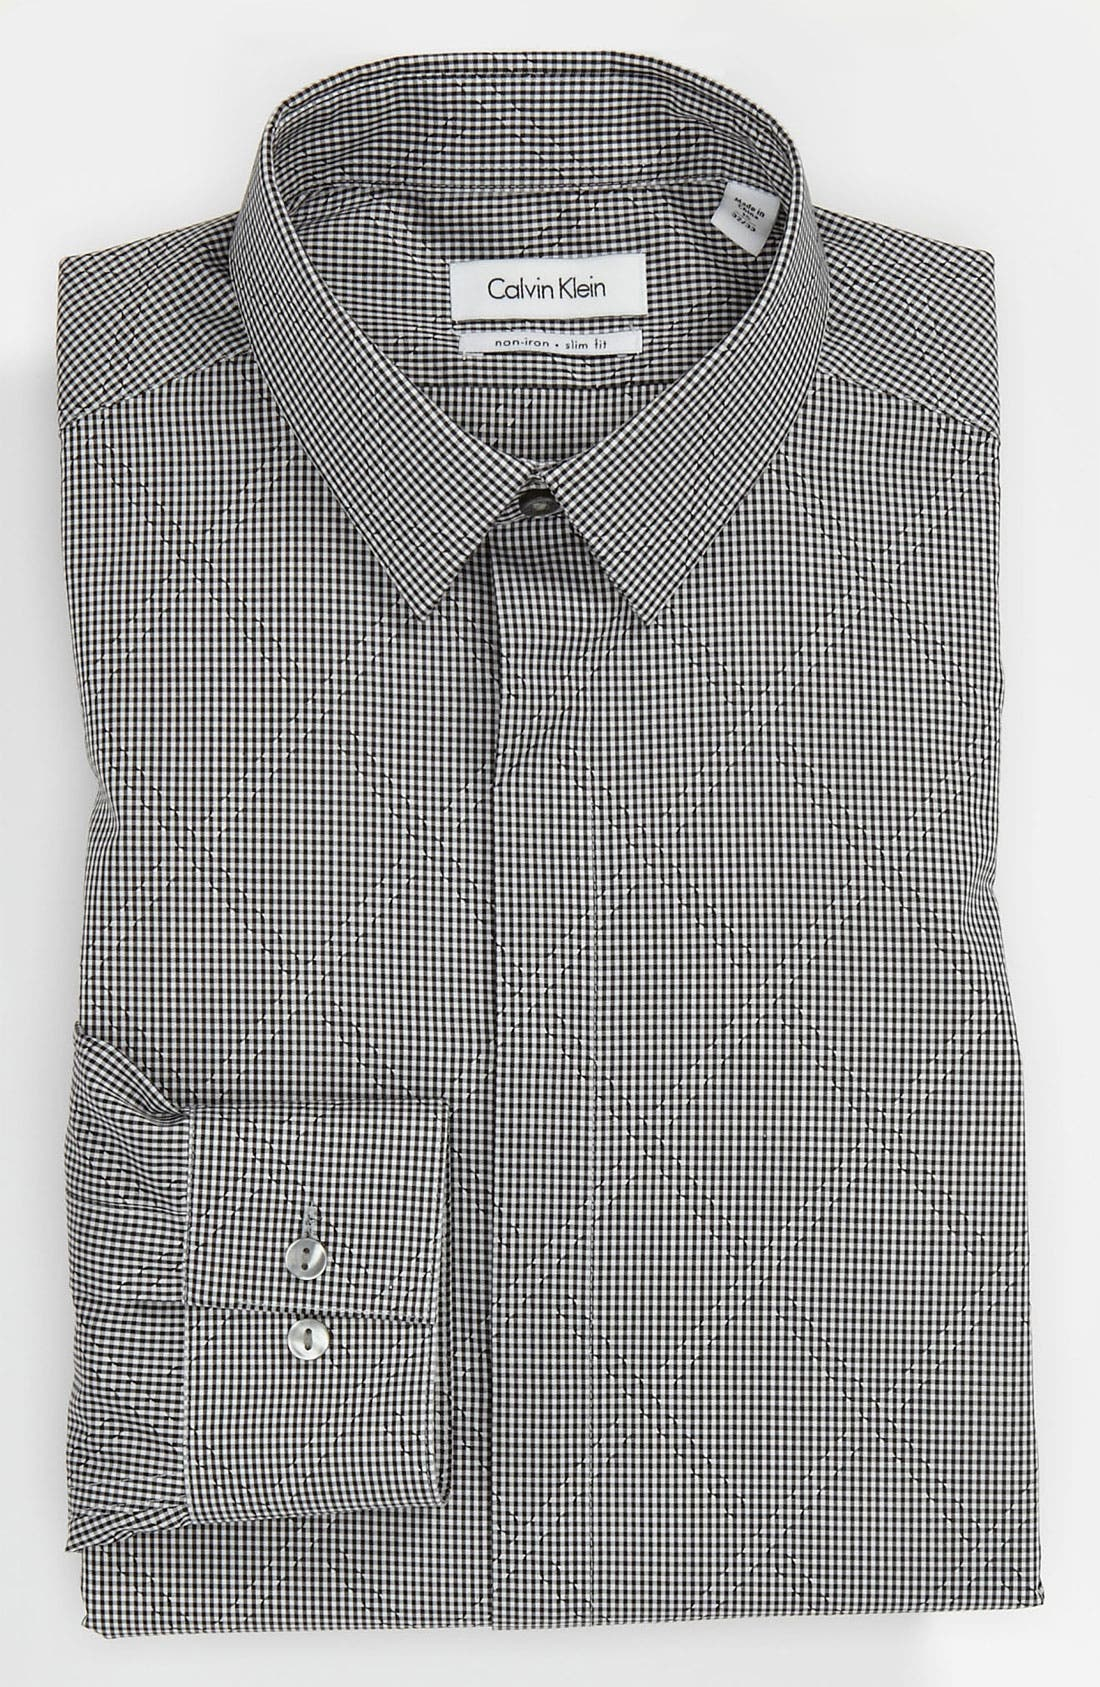 Main Image - Calvin Klein 'Como Check' Slim Fit Dress Shirt